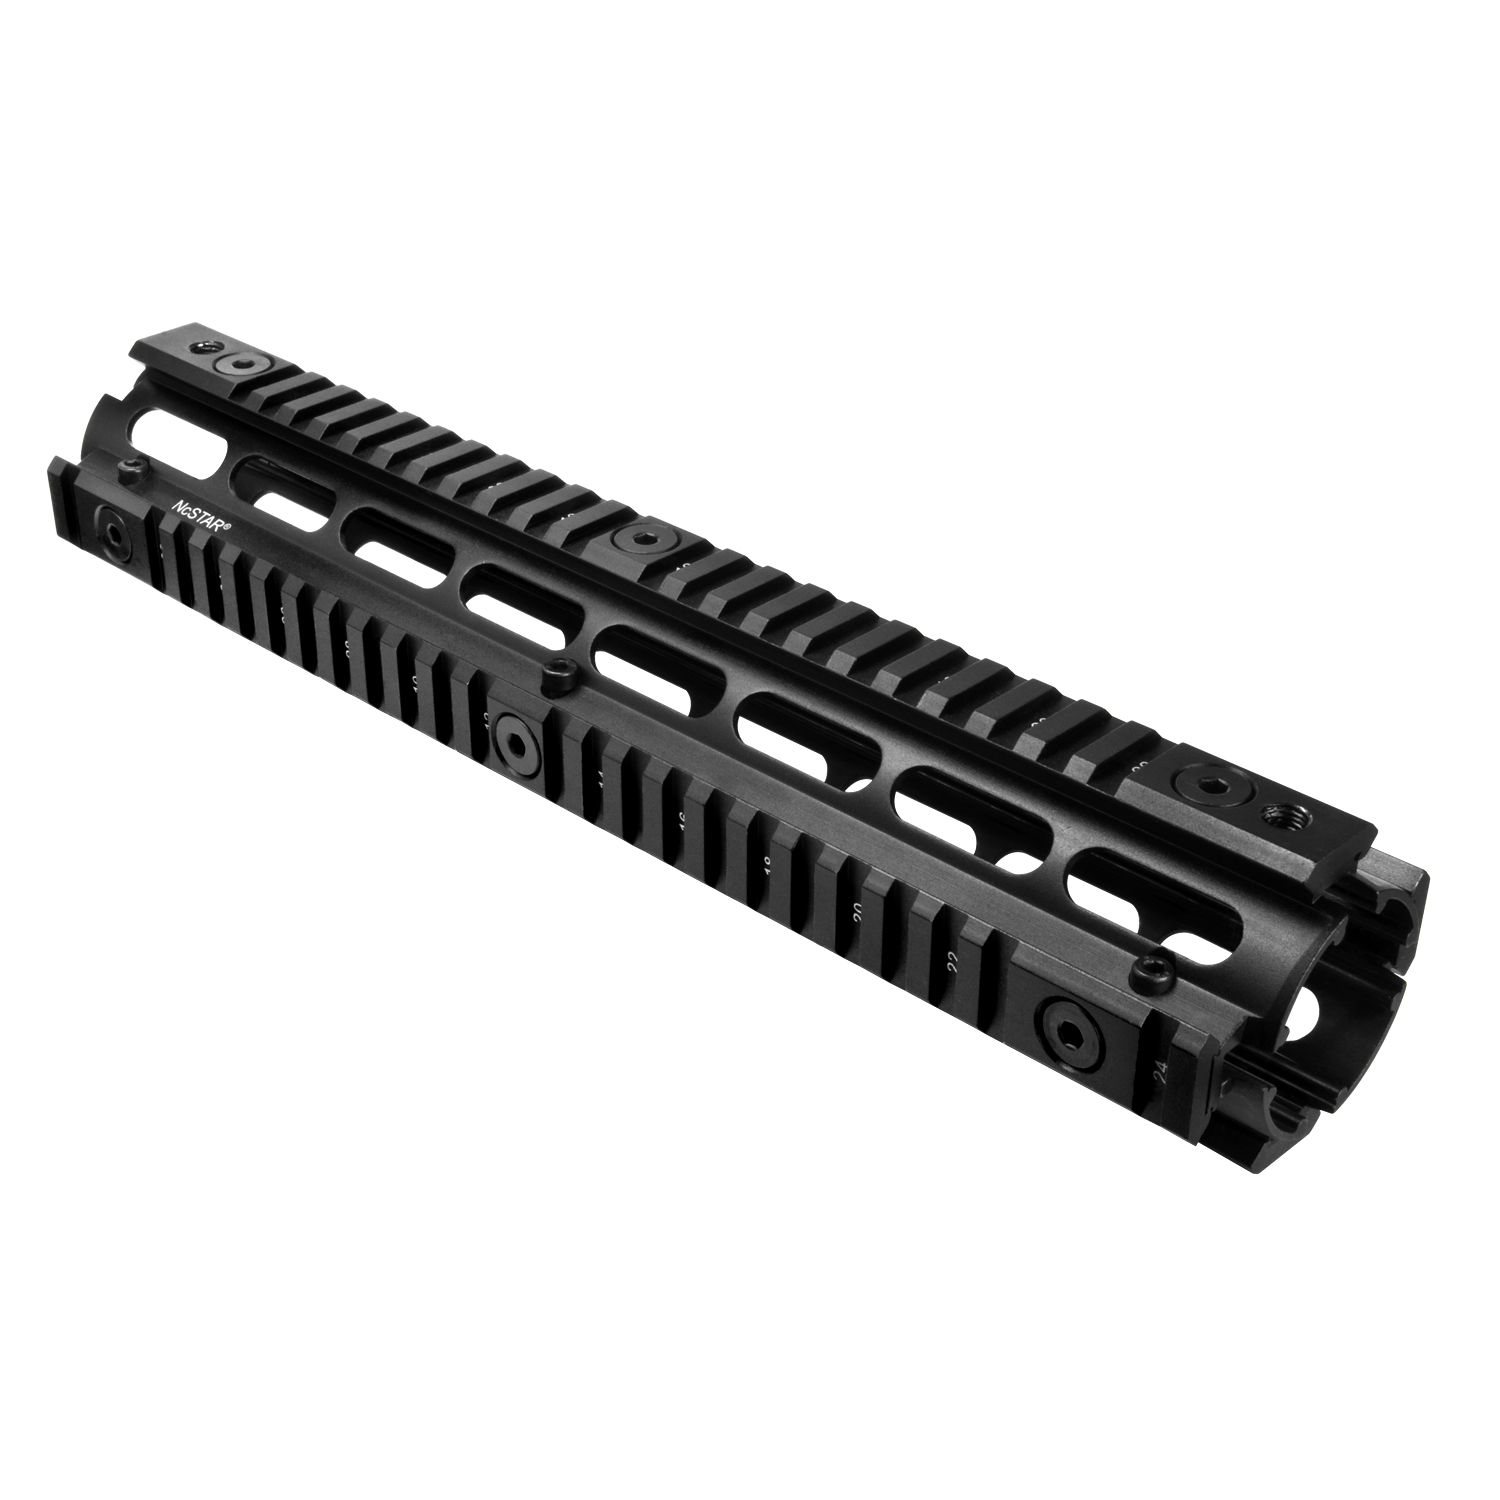 Ncstar AR15 Rifle Length Quadrail Hanguard System